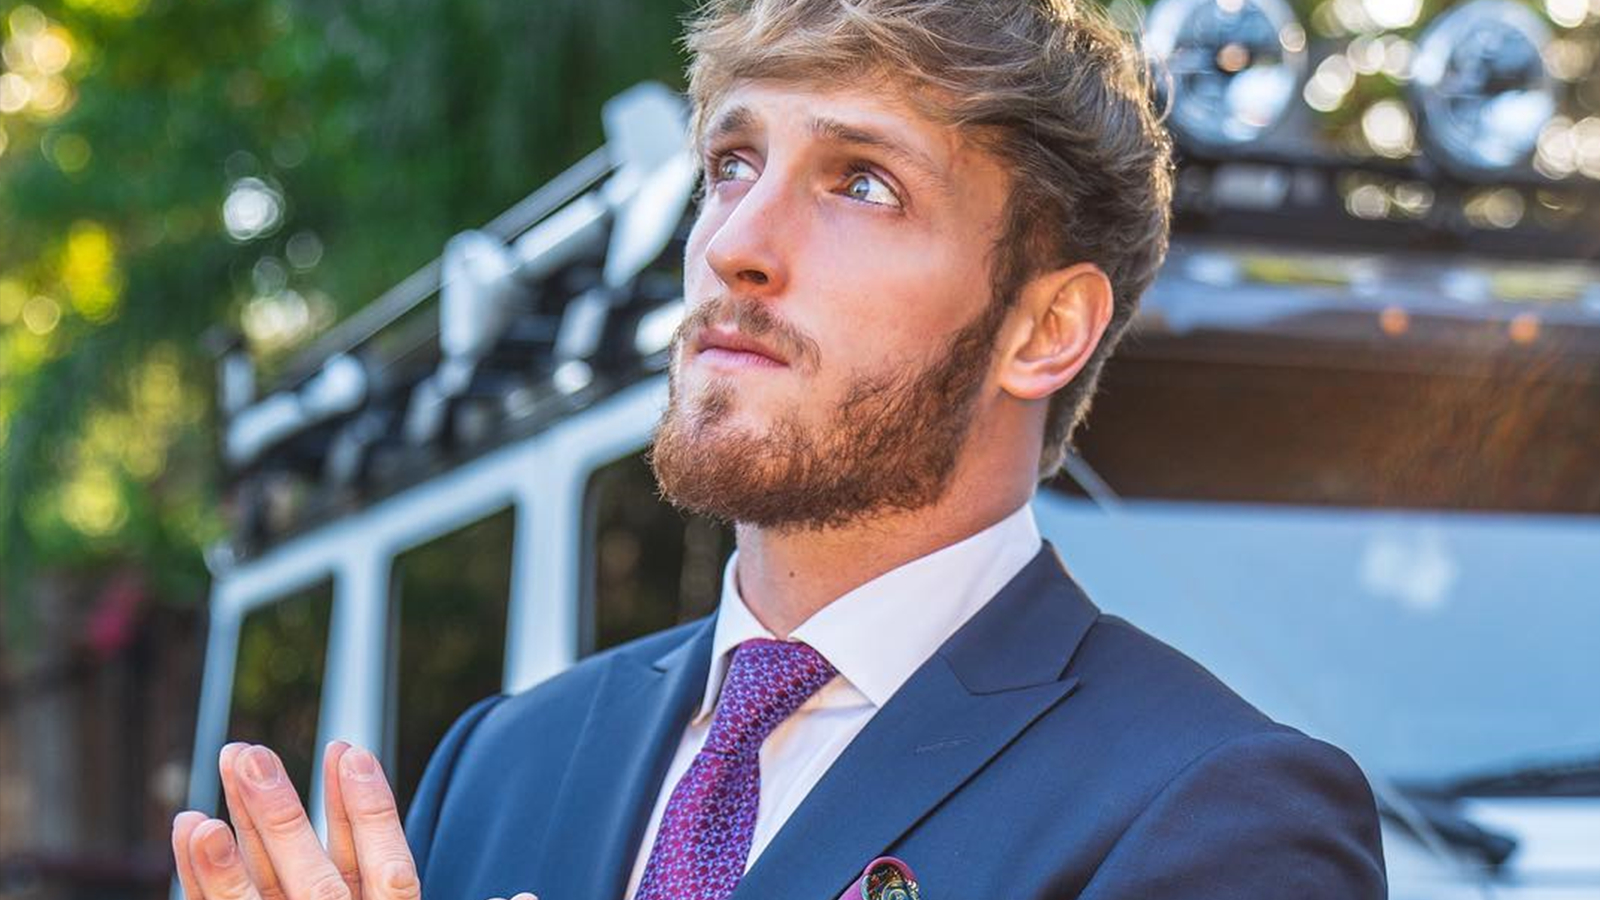 Logan Paul is currently 0–1 in his pro boxing career, but is looking to change that in 2021.